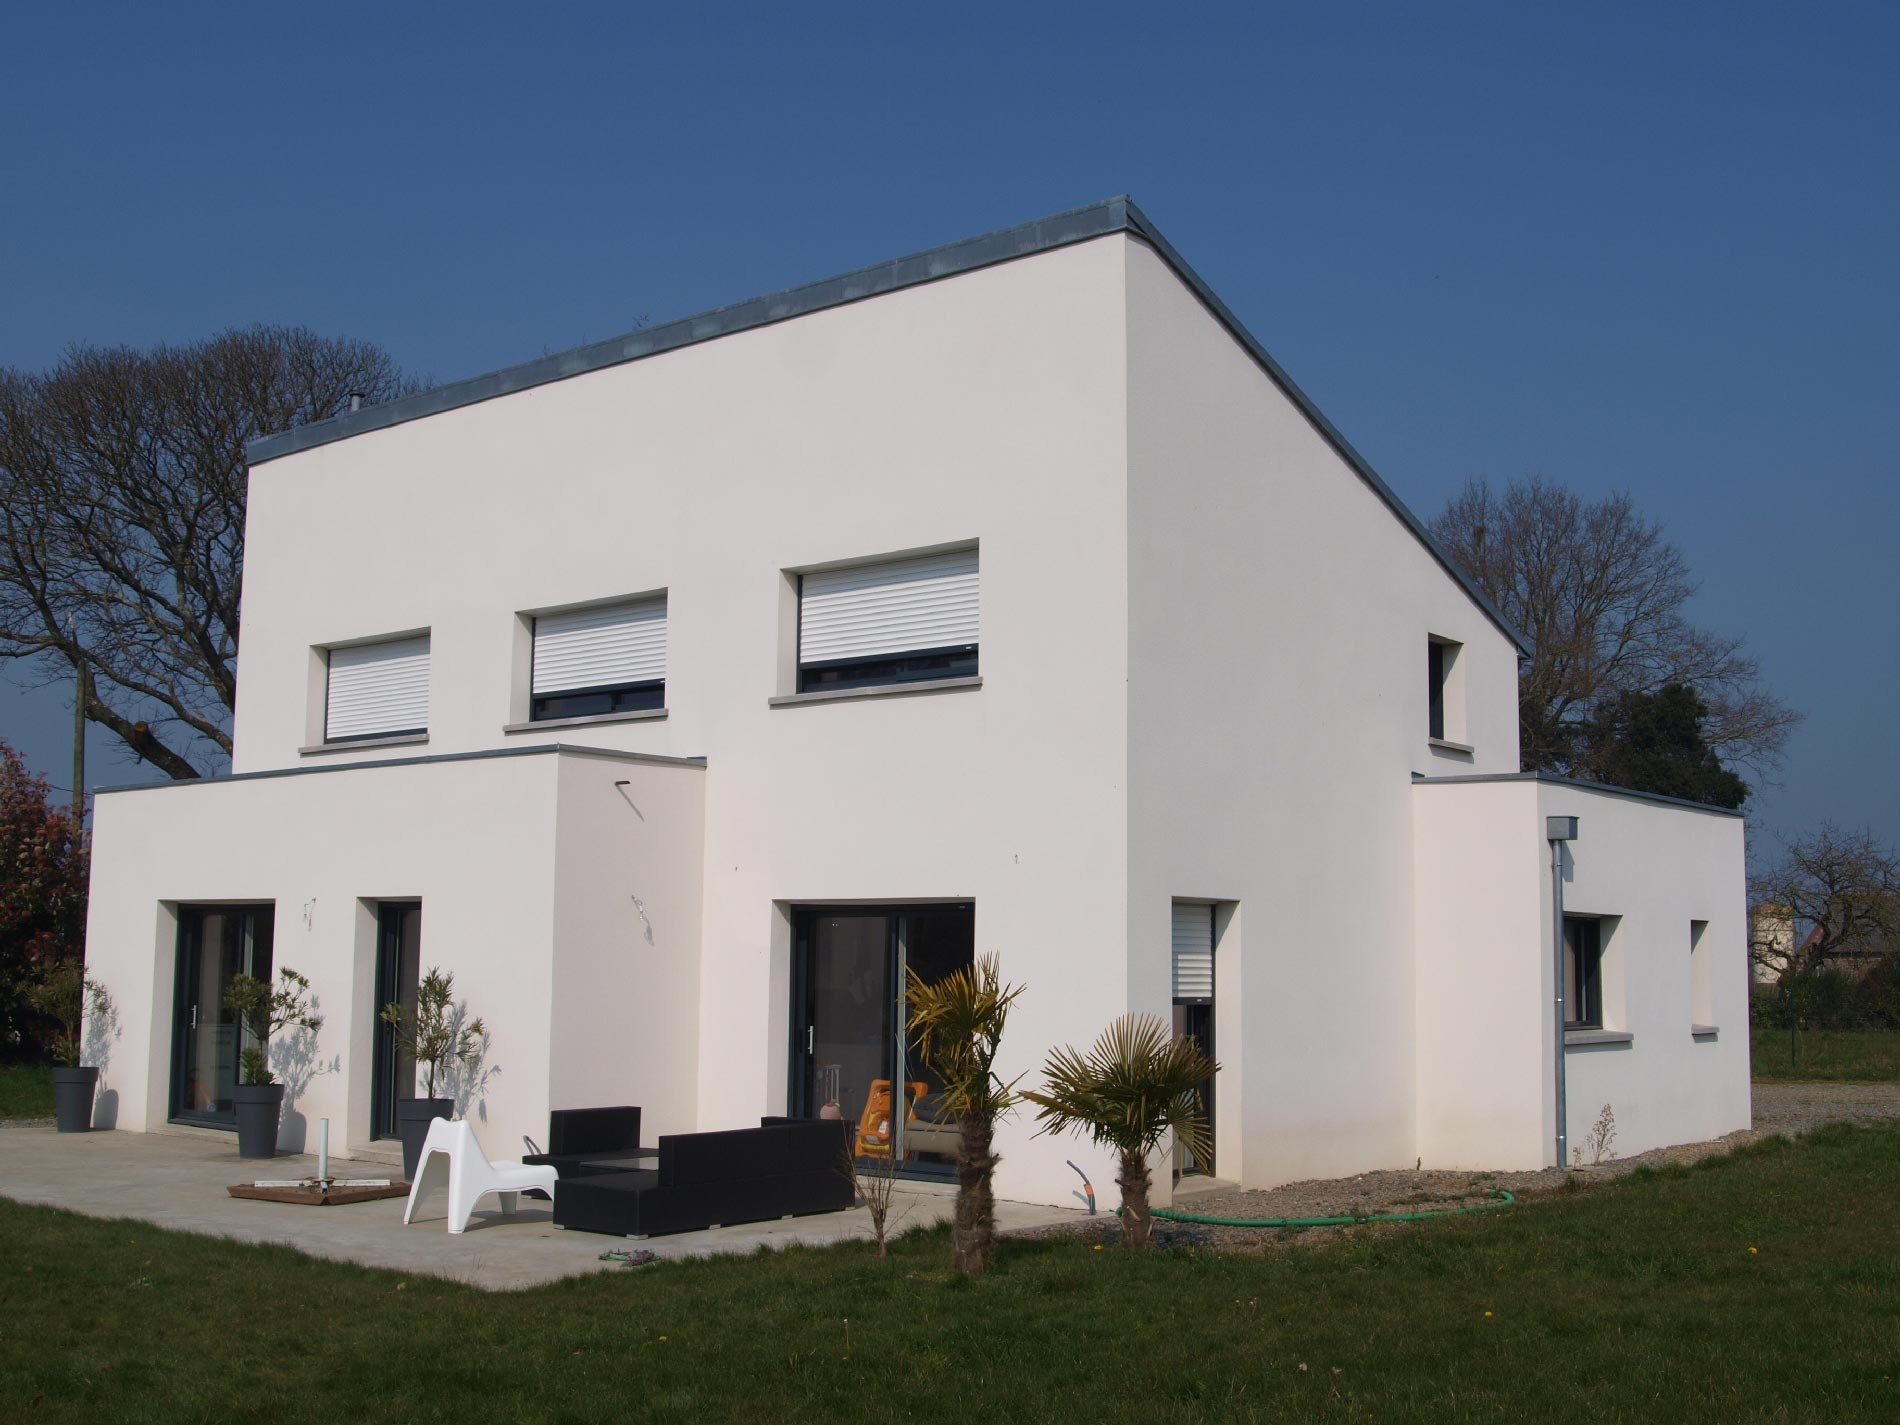 Saint symphorien maison contemporaine bruno jouanny for Architecte maison contemporaine